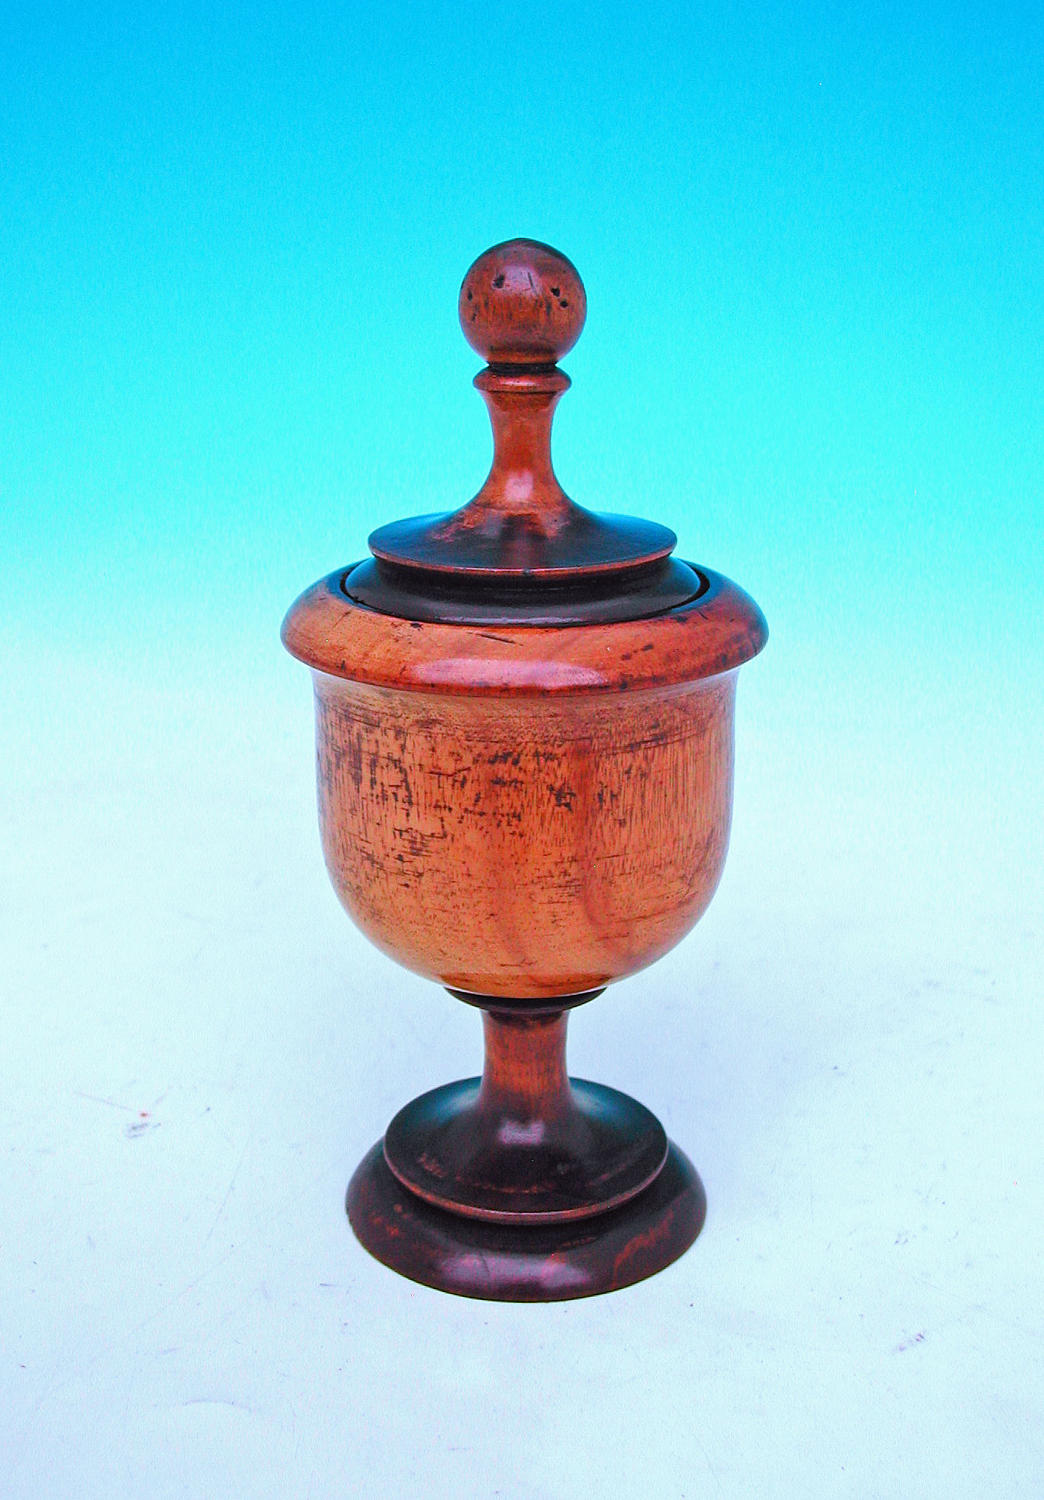 Antique Treen 19thc Fruitwood Pedestal Lidded Spice Pot.English. C1800